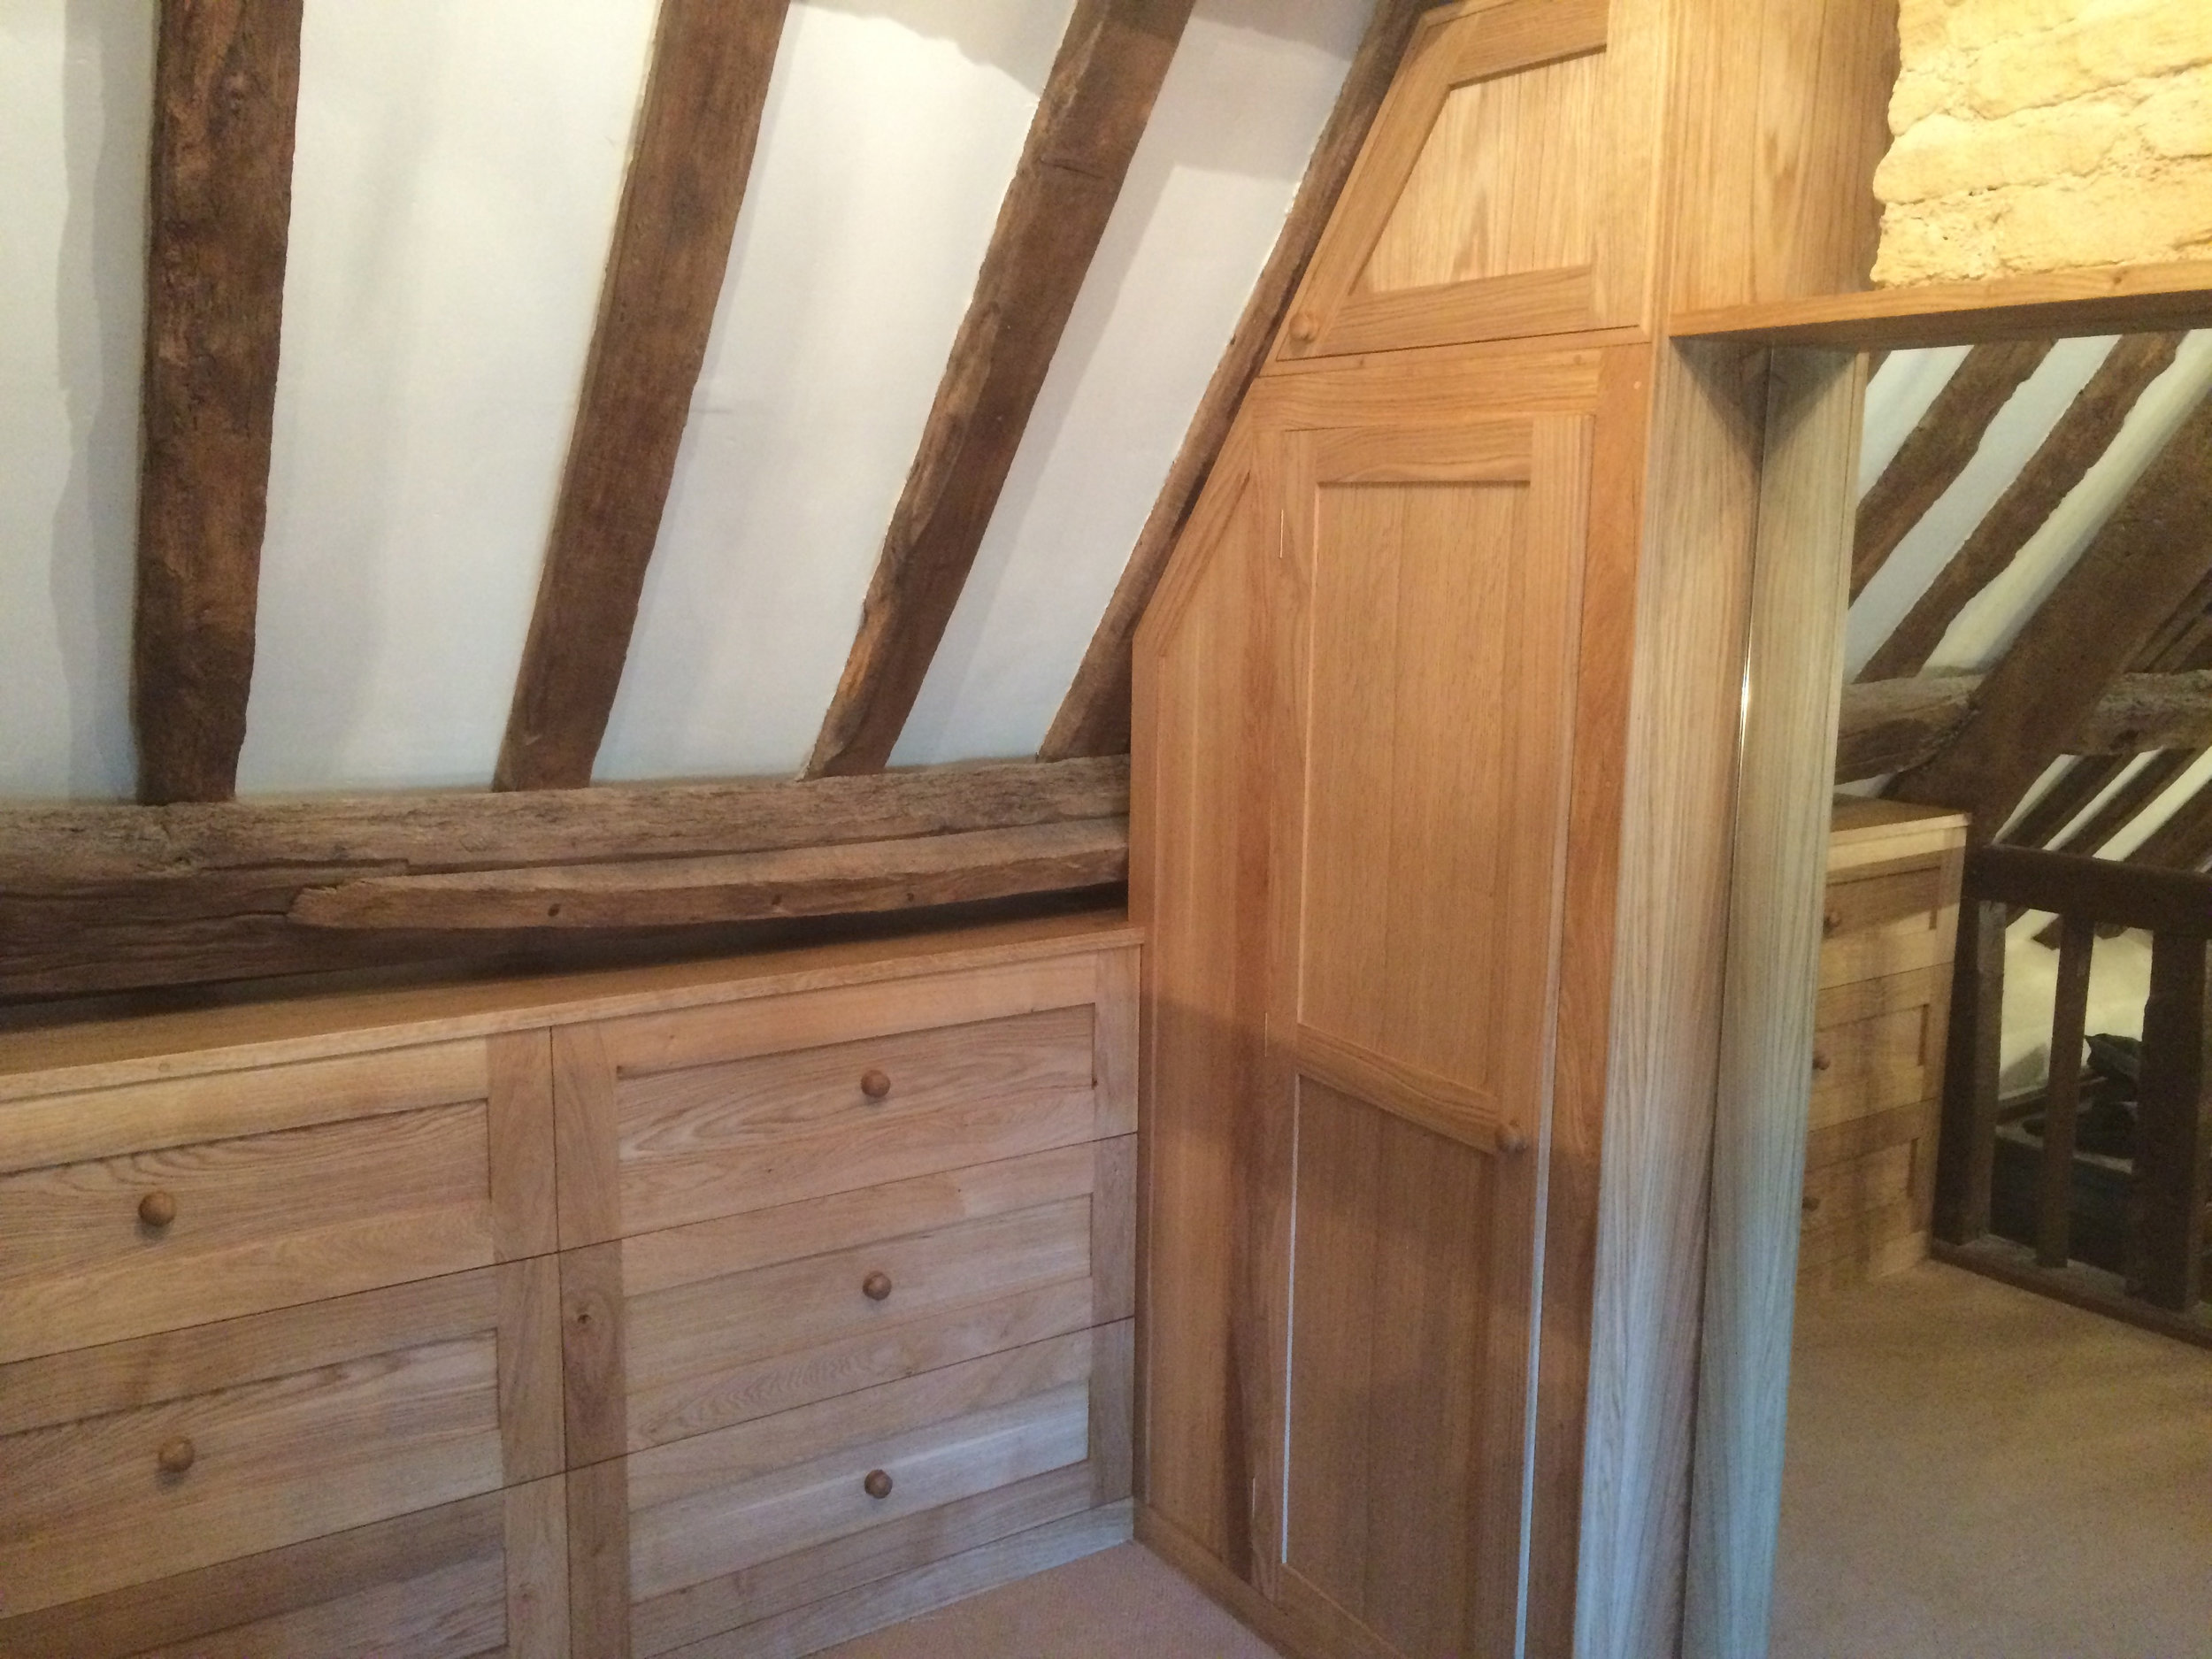 Fitted oak dressing room